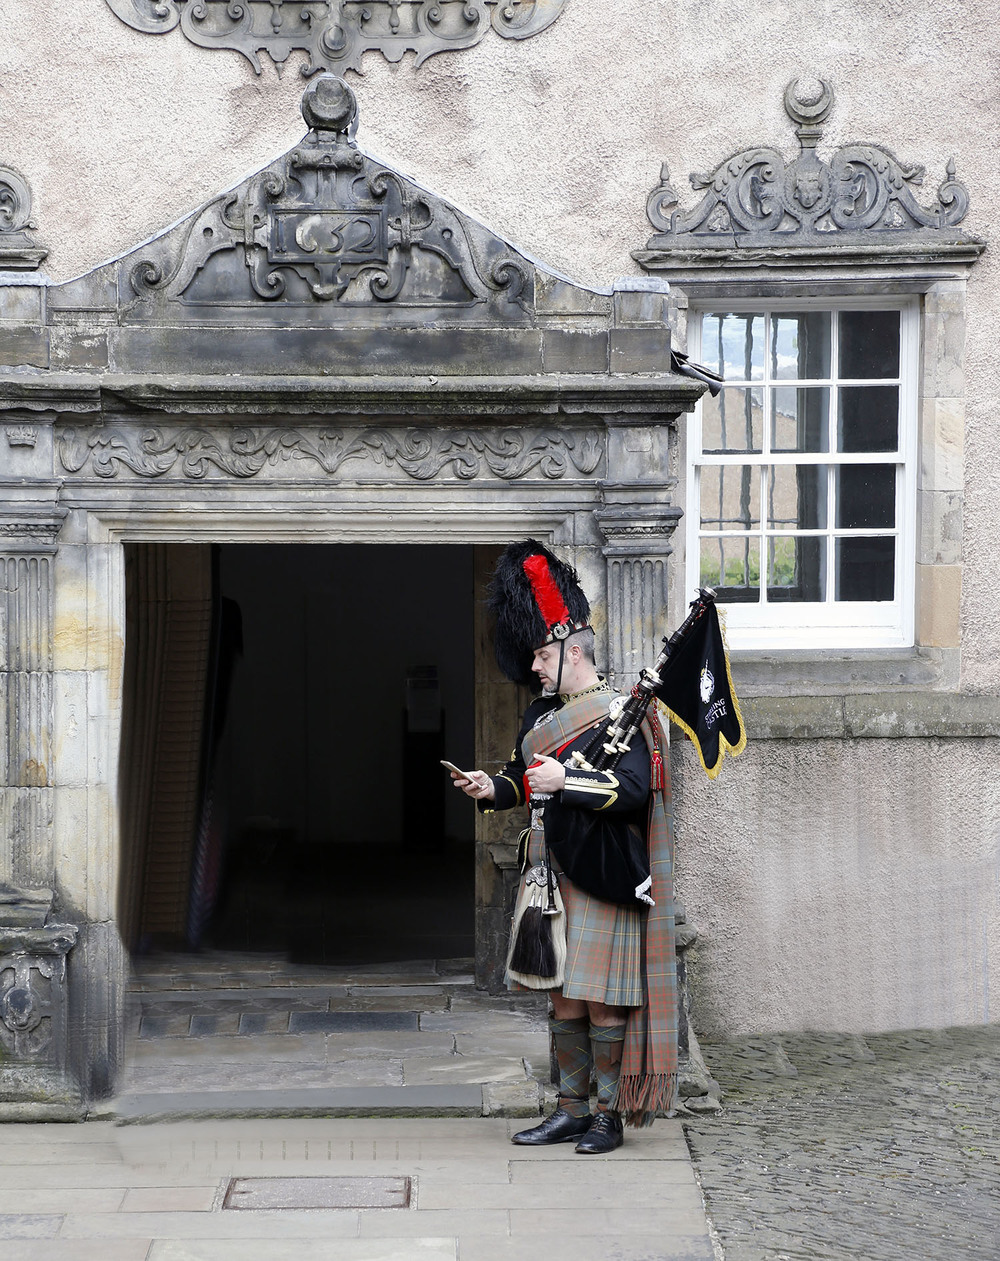 The Stirling Bagpiper